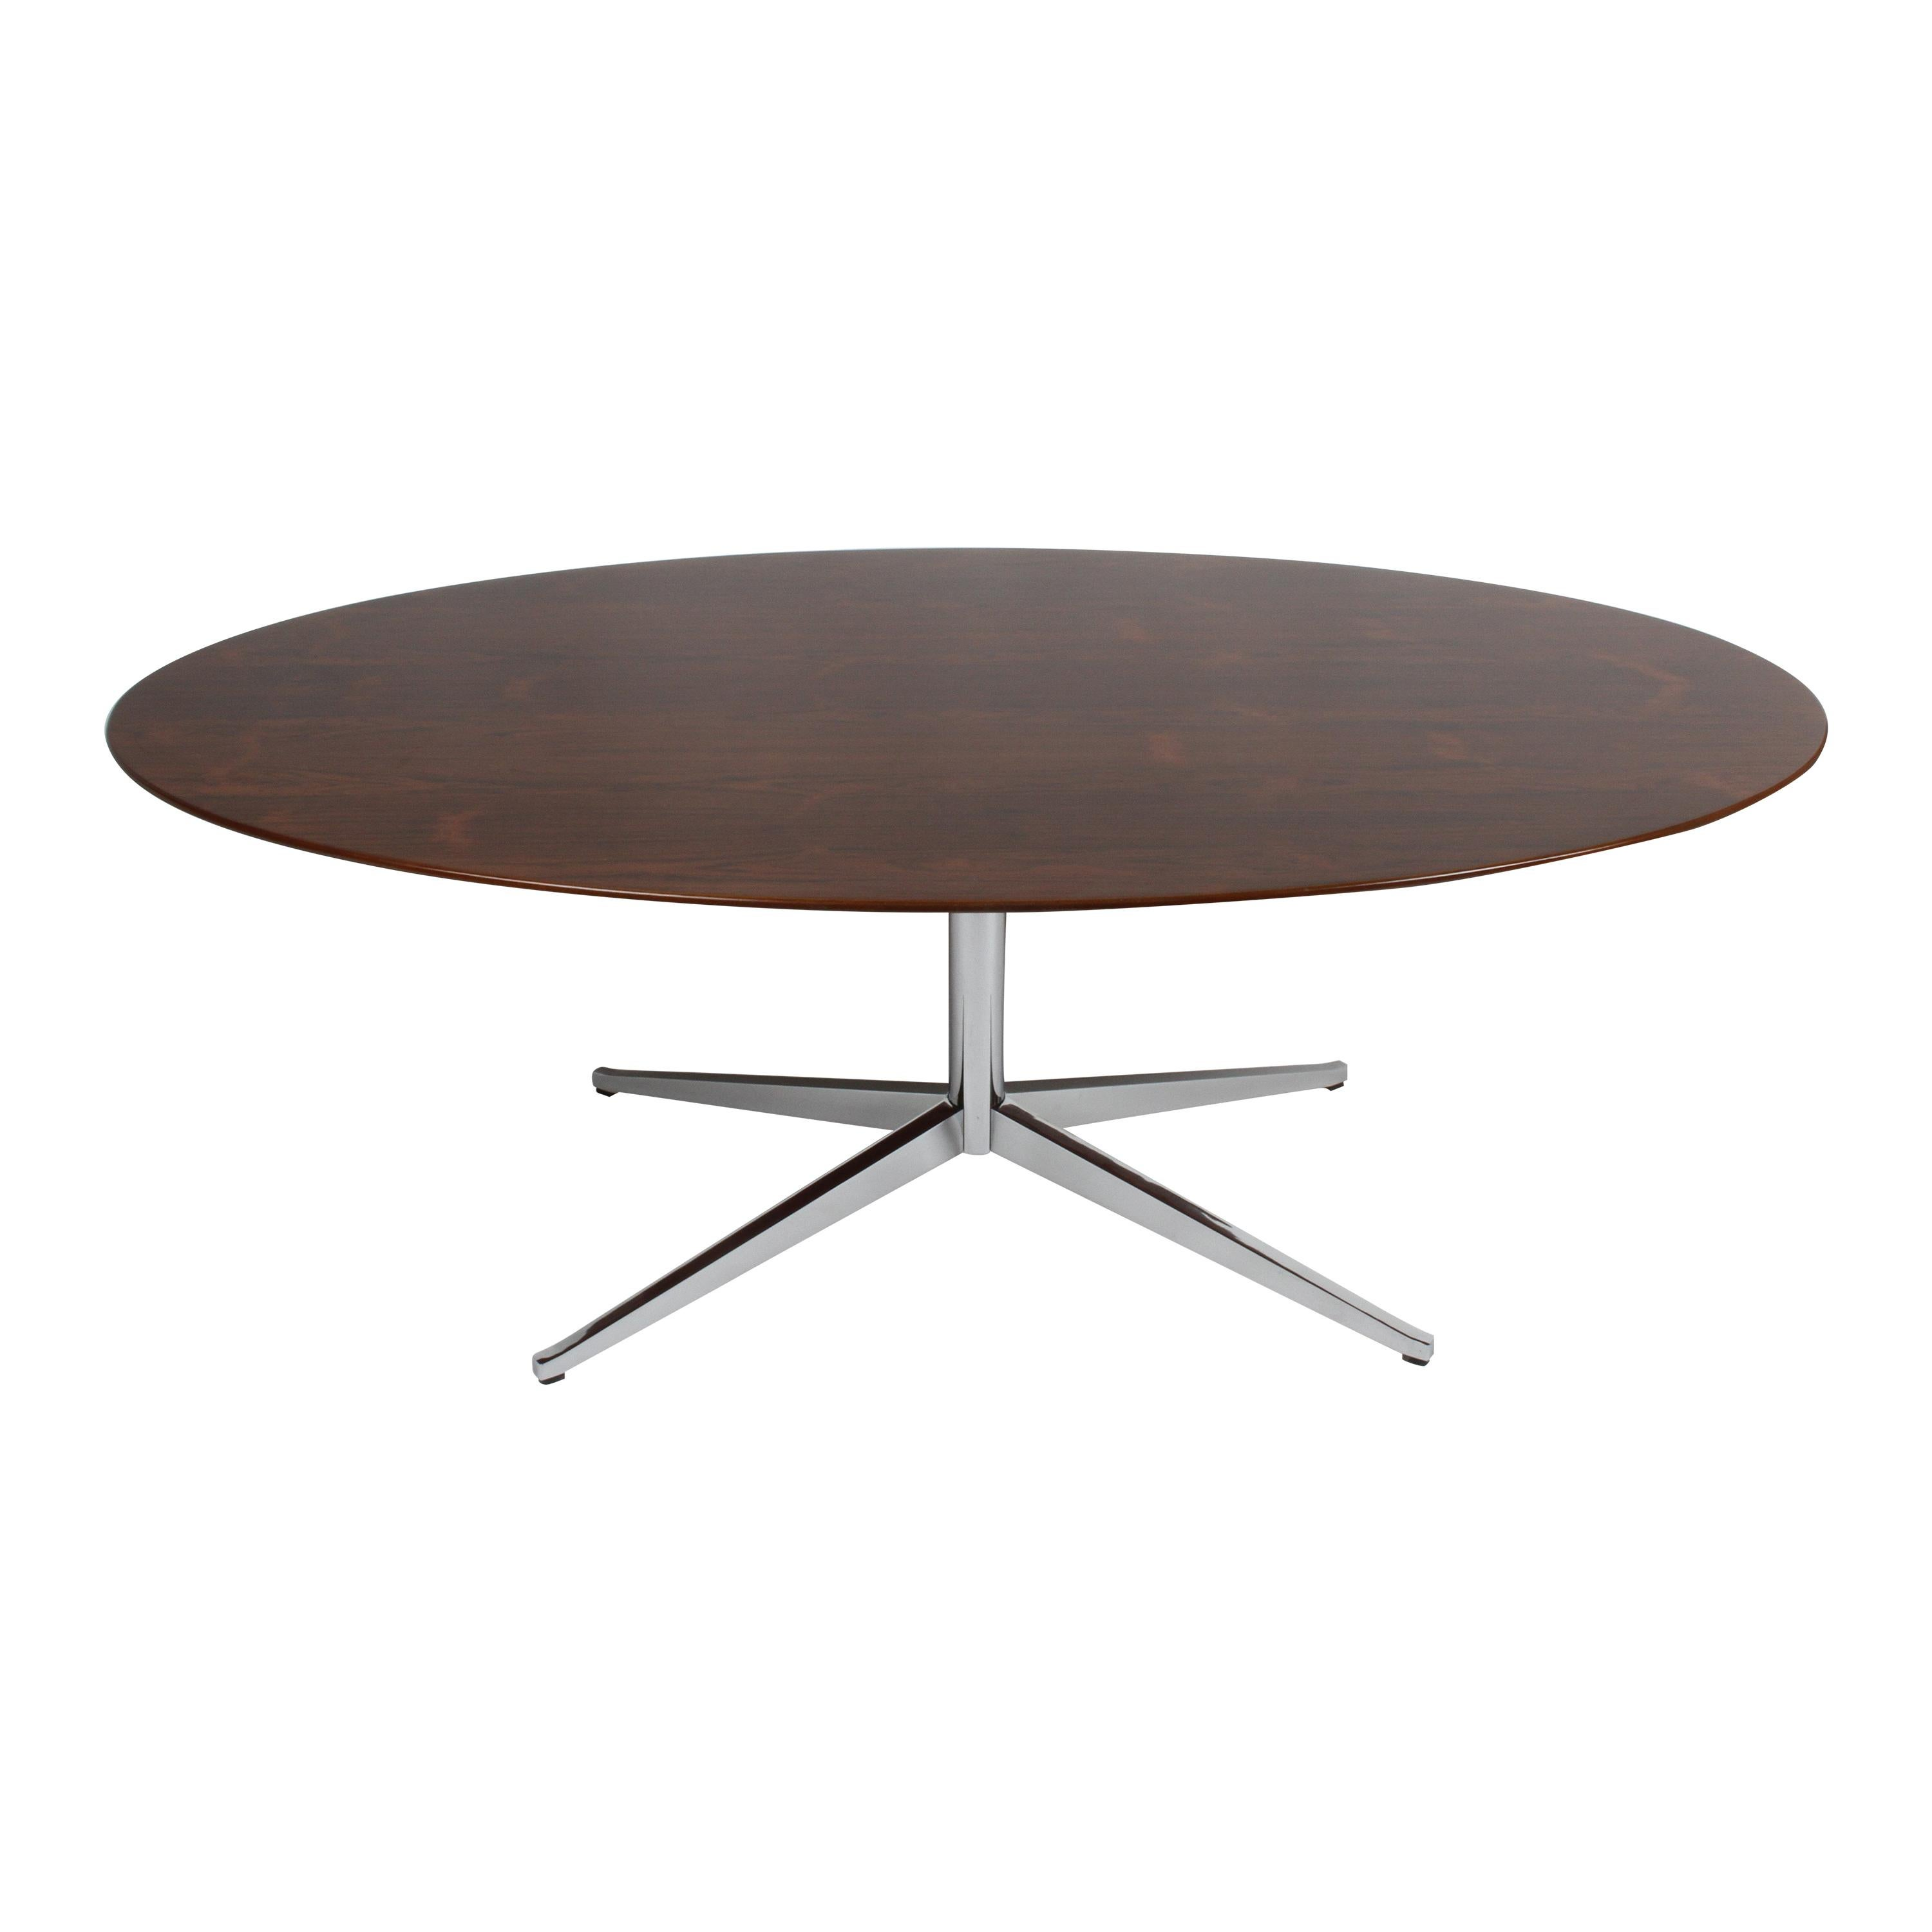 Restored Vintage Florence Knoll Oval Top Rosewood Dining or Conference Table